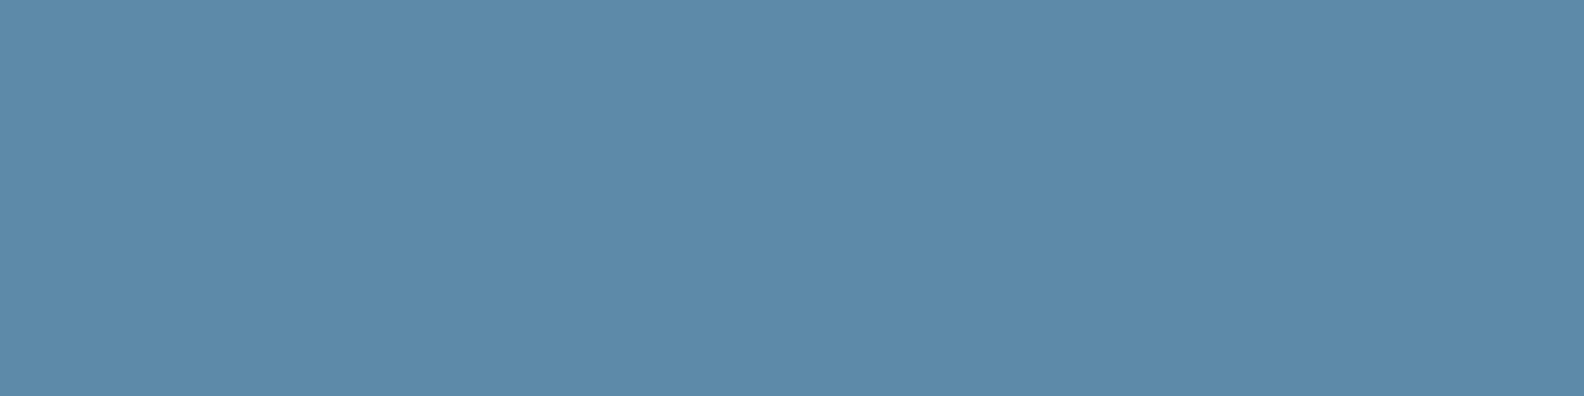 1584x396 Air Force Blue Solid Color Background